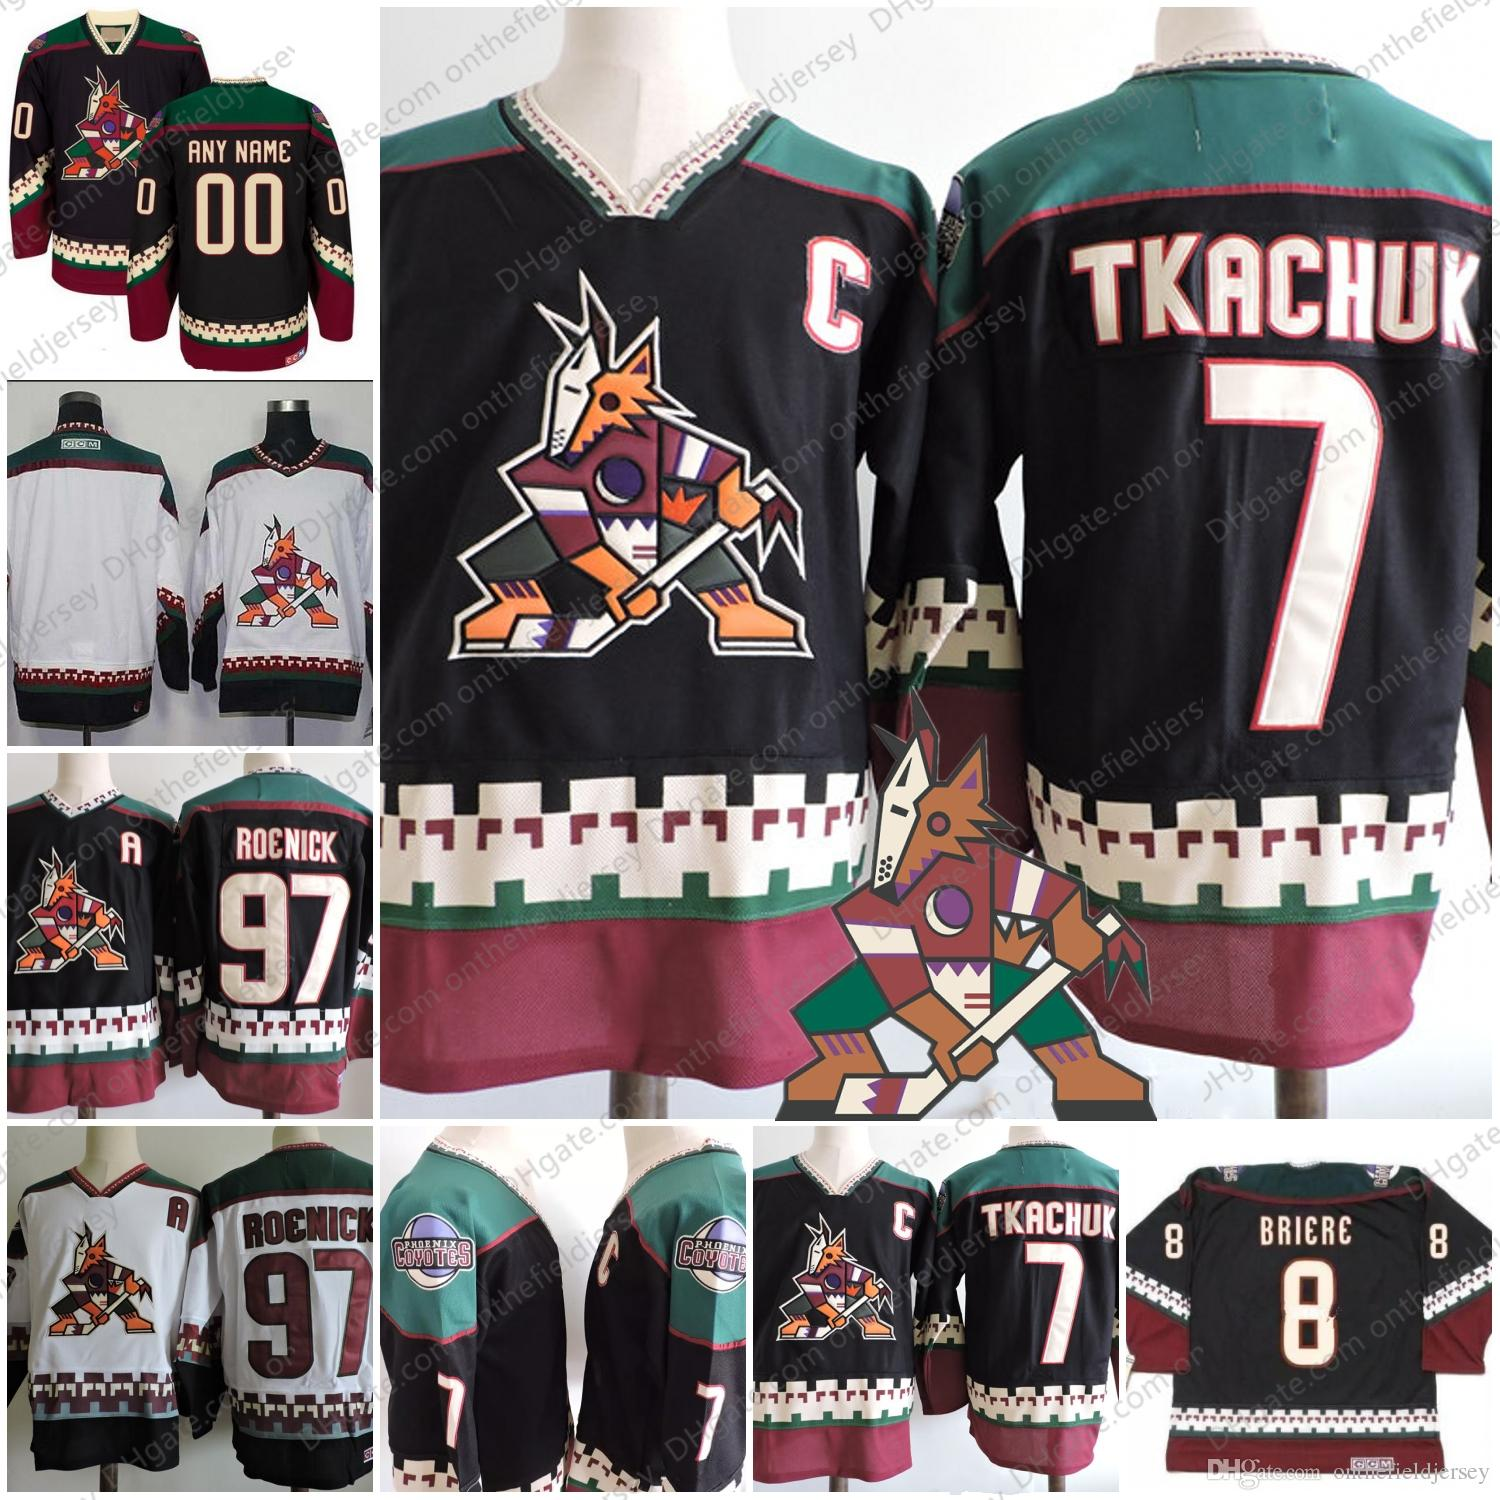 spain nicest vintage jersey hfboards 65223 b7b80  clearance 2019 custom arizona  phoenix coyotes vintage hockey jerseys 97 jeremy roenick 7 keith tkachuk ... 3ee697dbb